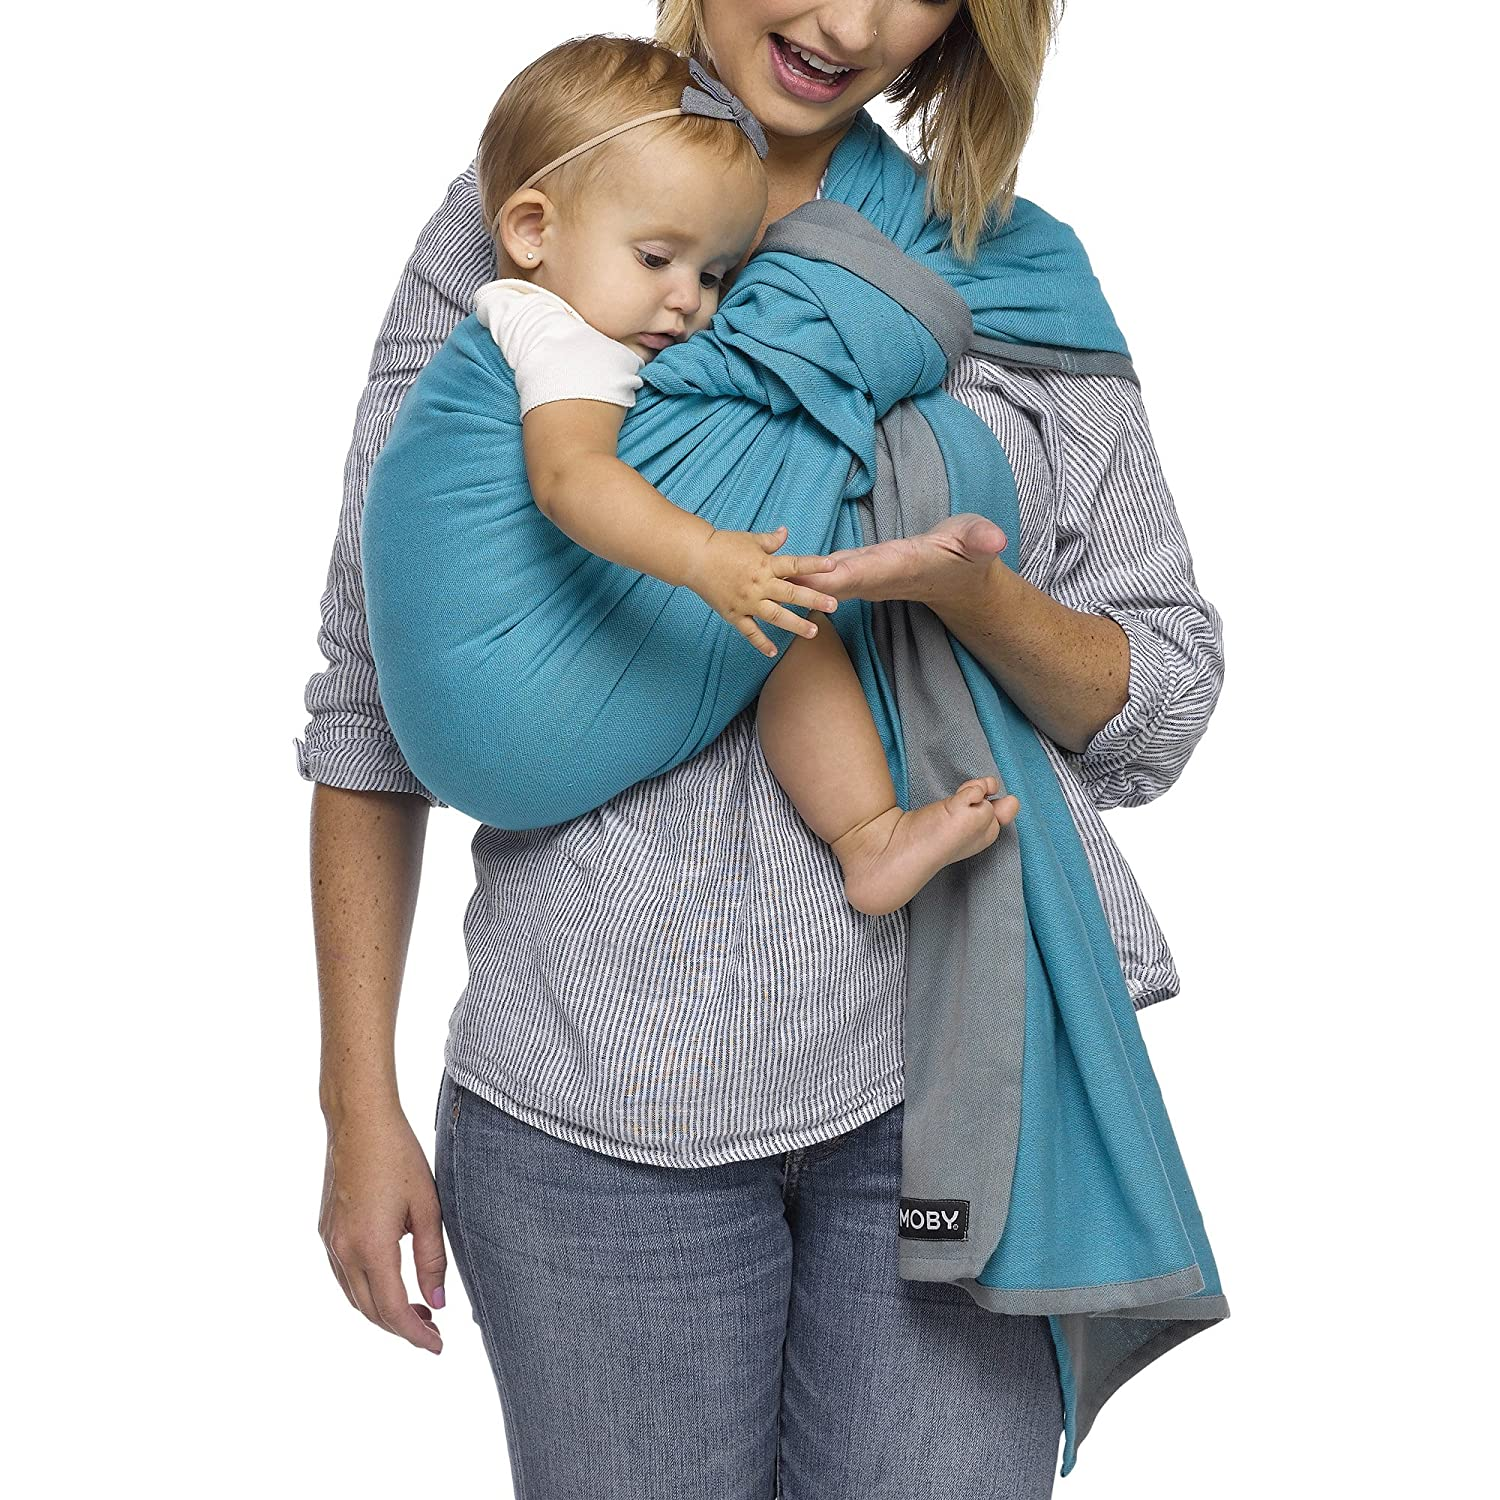 a1f29e452de Amazon.com   Moby Ring Sling Baby Carrier (Ocean Twist) - Ring Sling Carrier  for Babywearing -Baby Sling for Baby Wearing